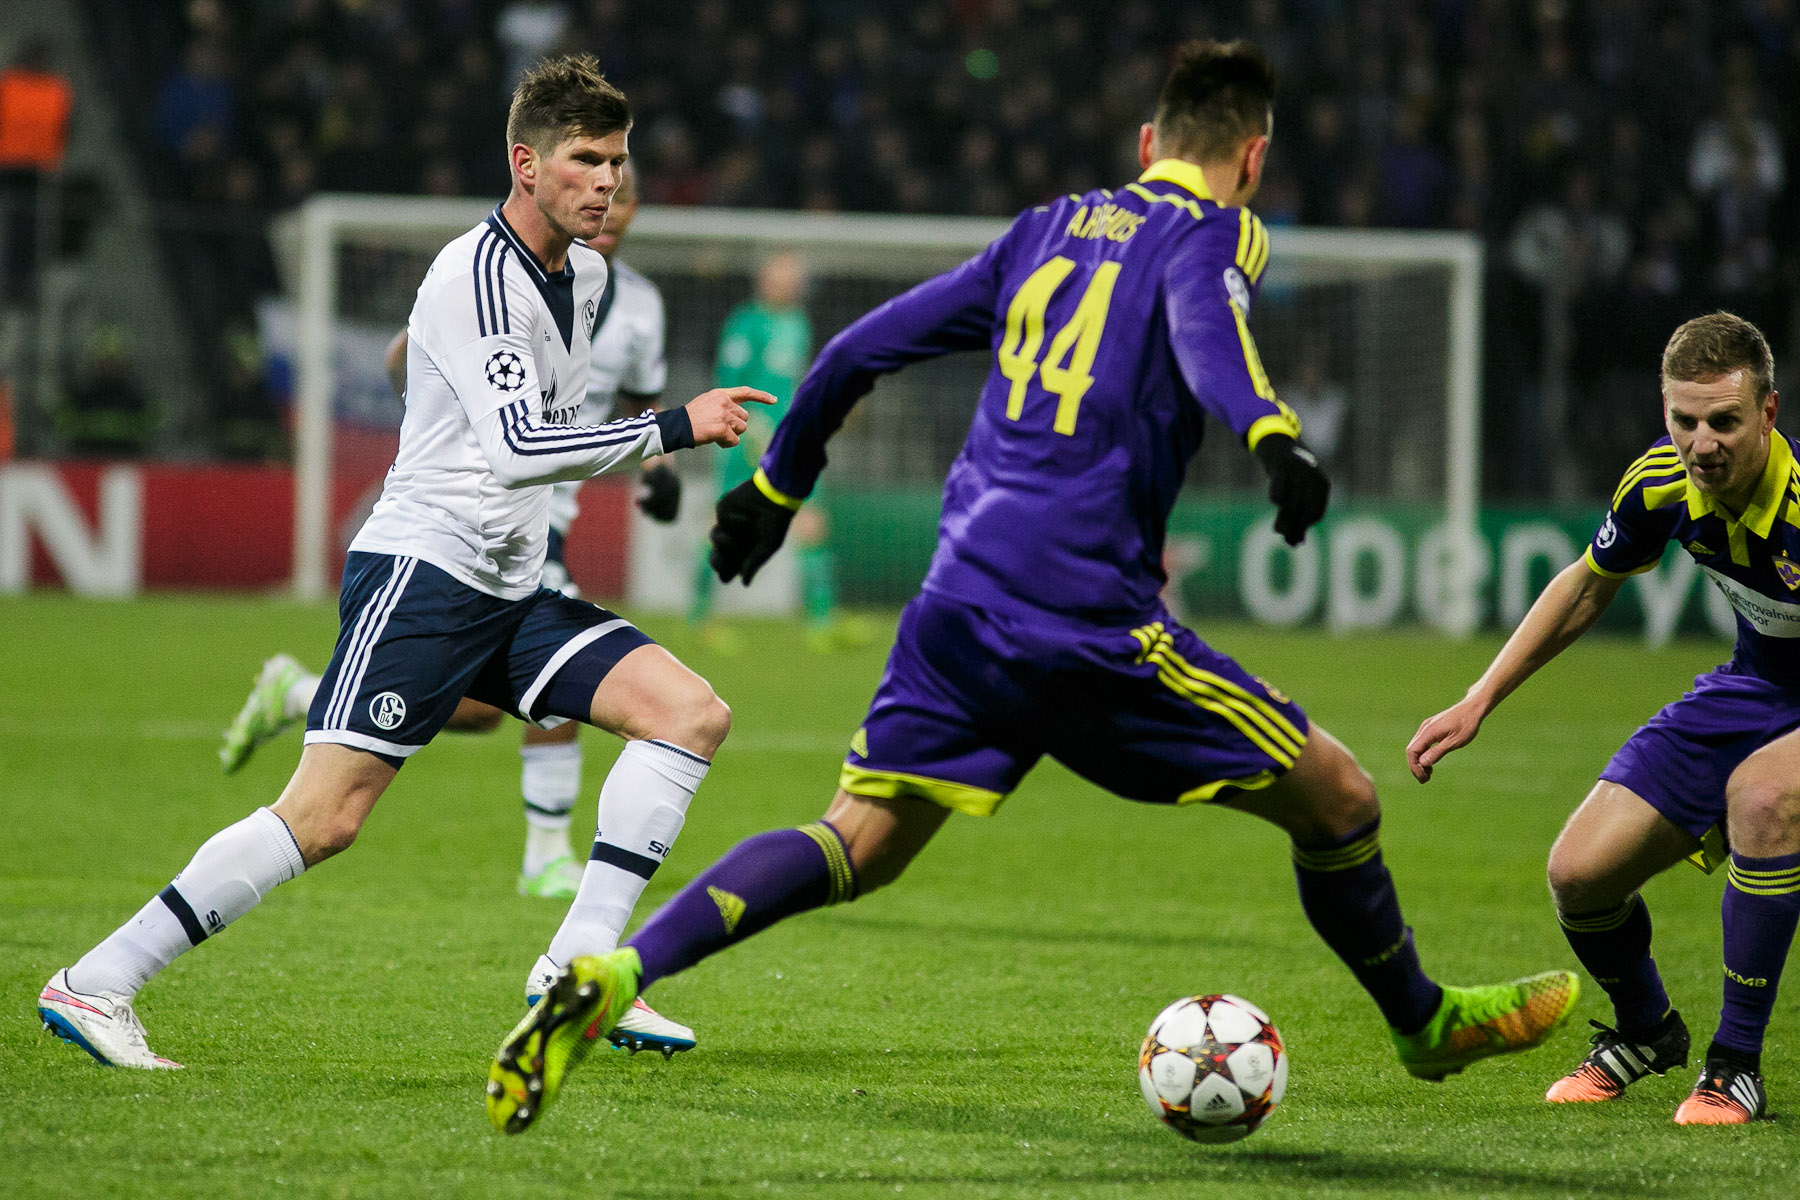 Arghus of NK Maribor in action during the UEFA Champions League Group G match againt FC Schalke 04 on December 10 in Maribor, Slovenia.